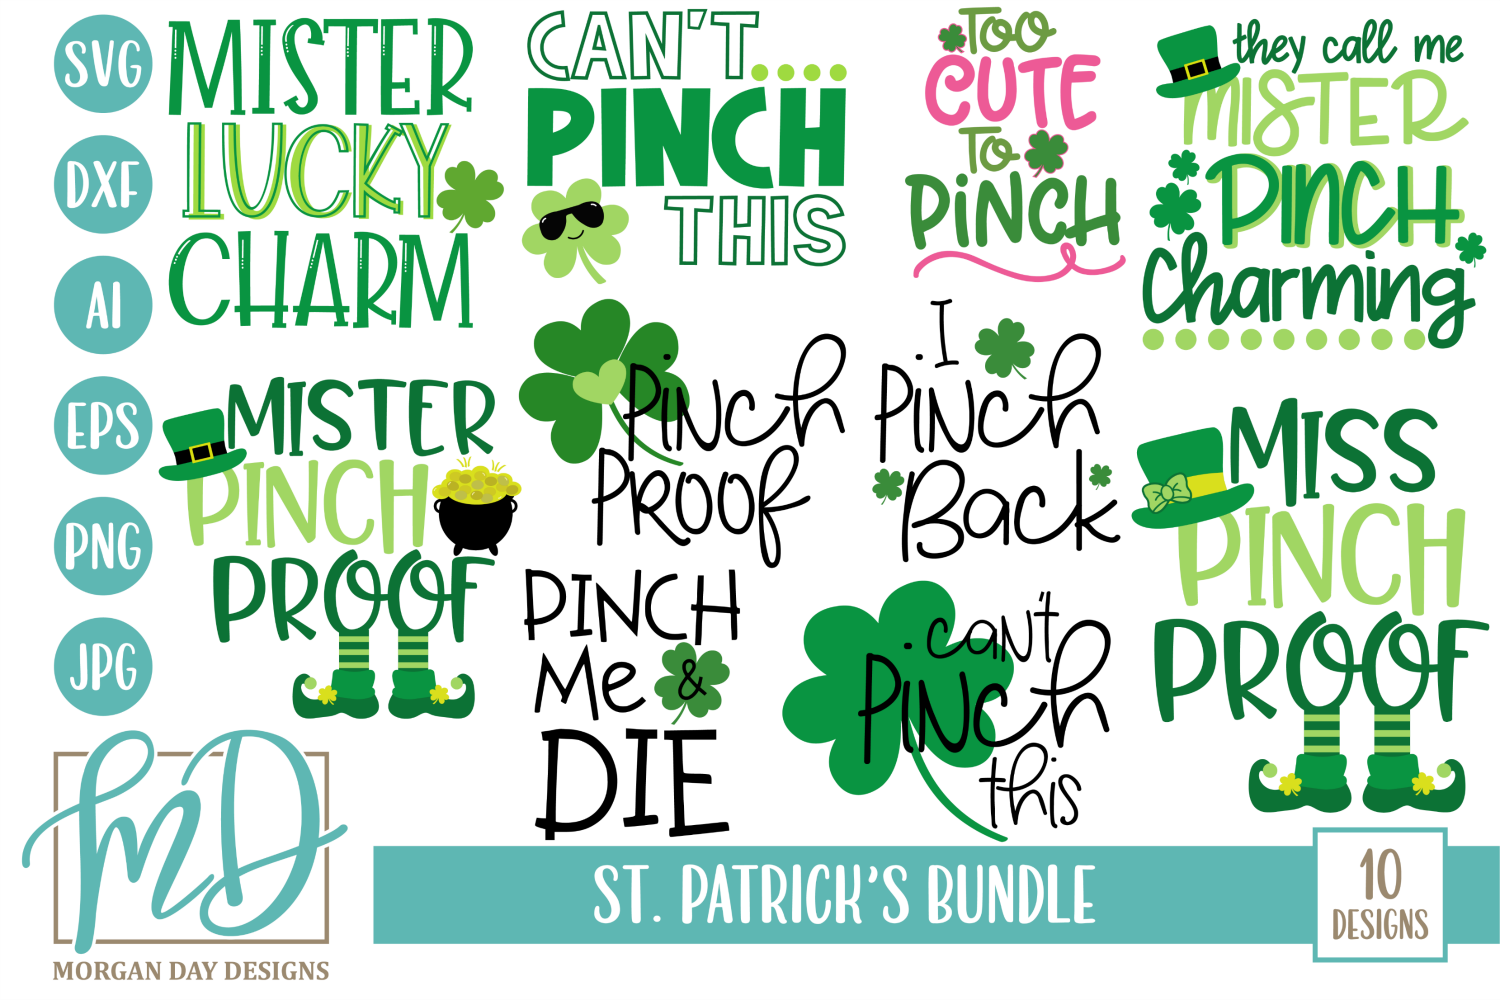 Download Free St Patrick S Bundle Graphic By Morgan Day Designs Creative Fabrica for Cricut Explore, Silhouette and other cutting machines.